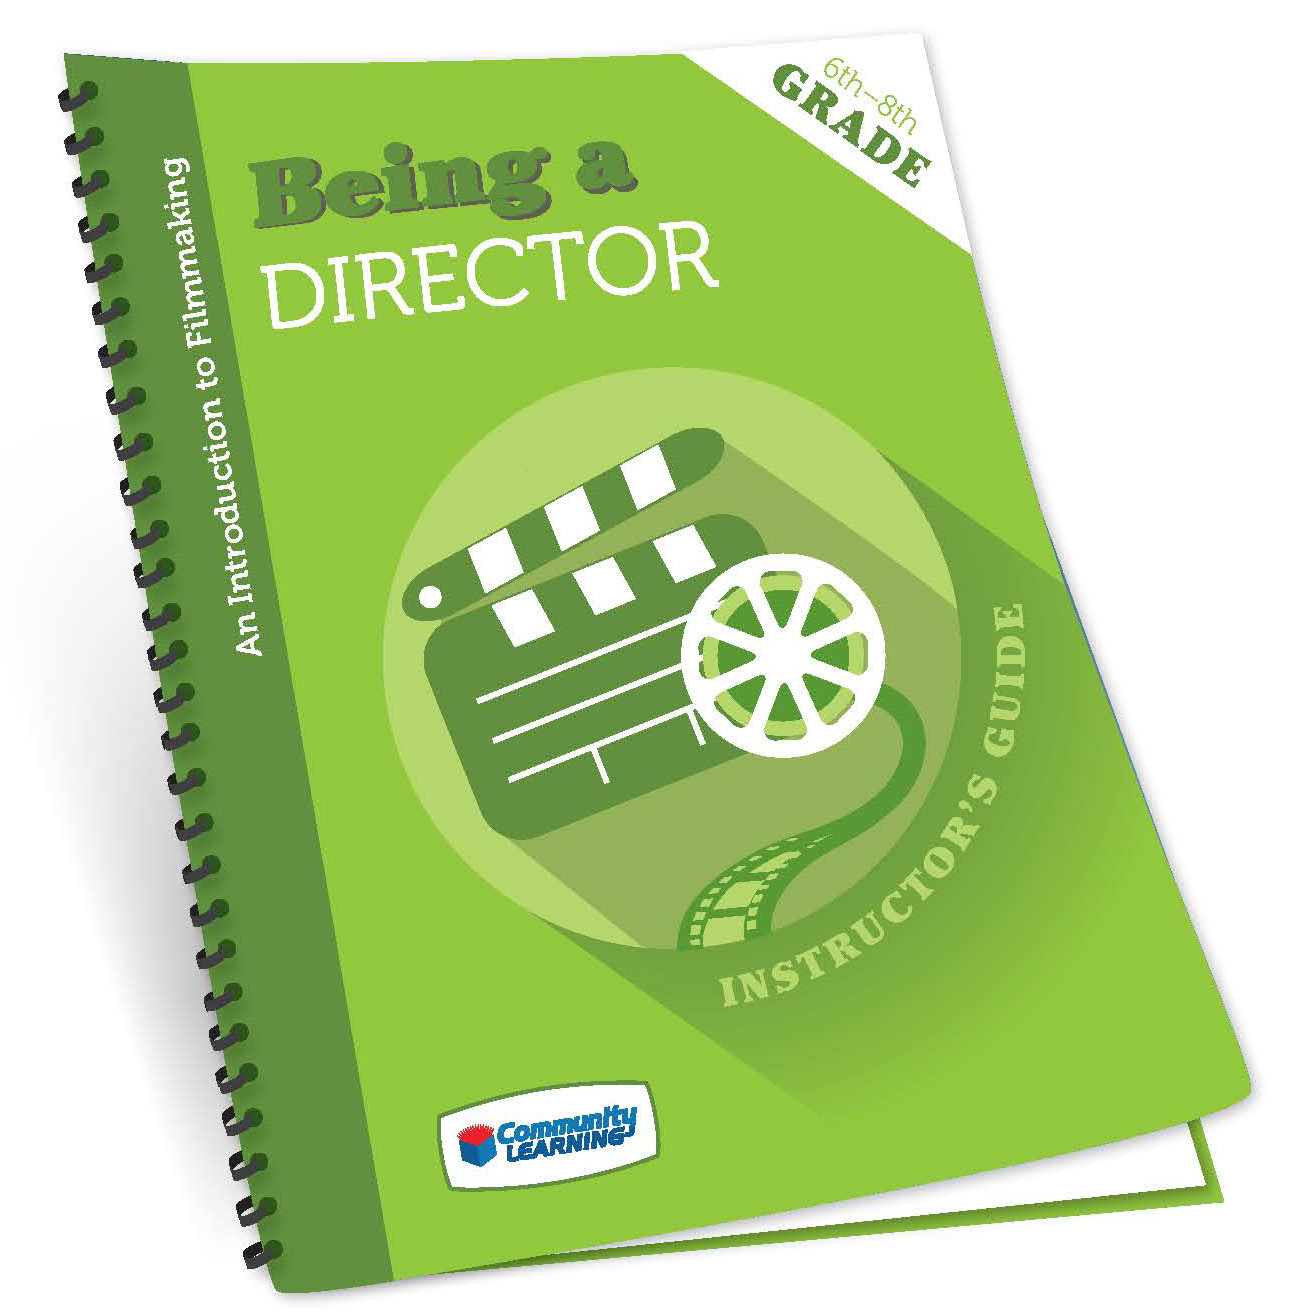 Being a Director Instructor's Guide